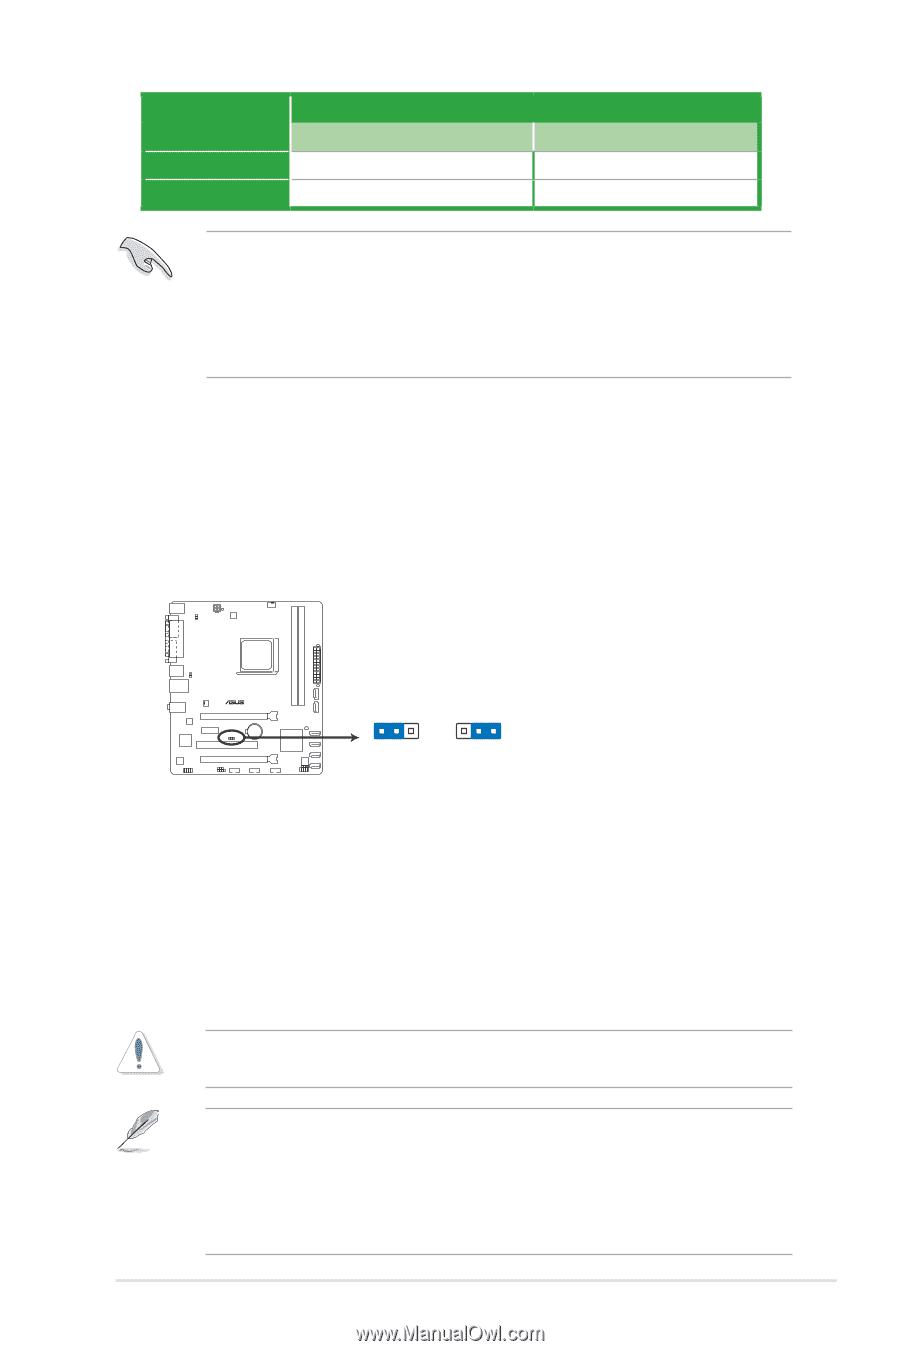 Asus F1a55 M Lx R20 Plus Users Manual Page 29 Usb Cable Wiring Diagram 19